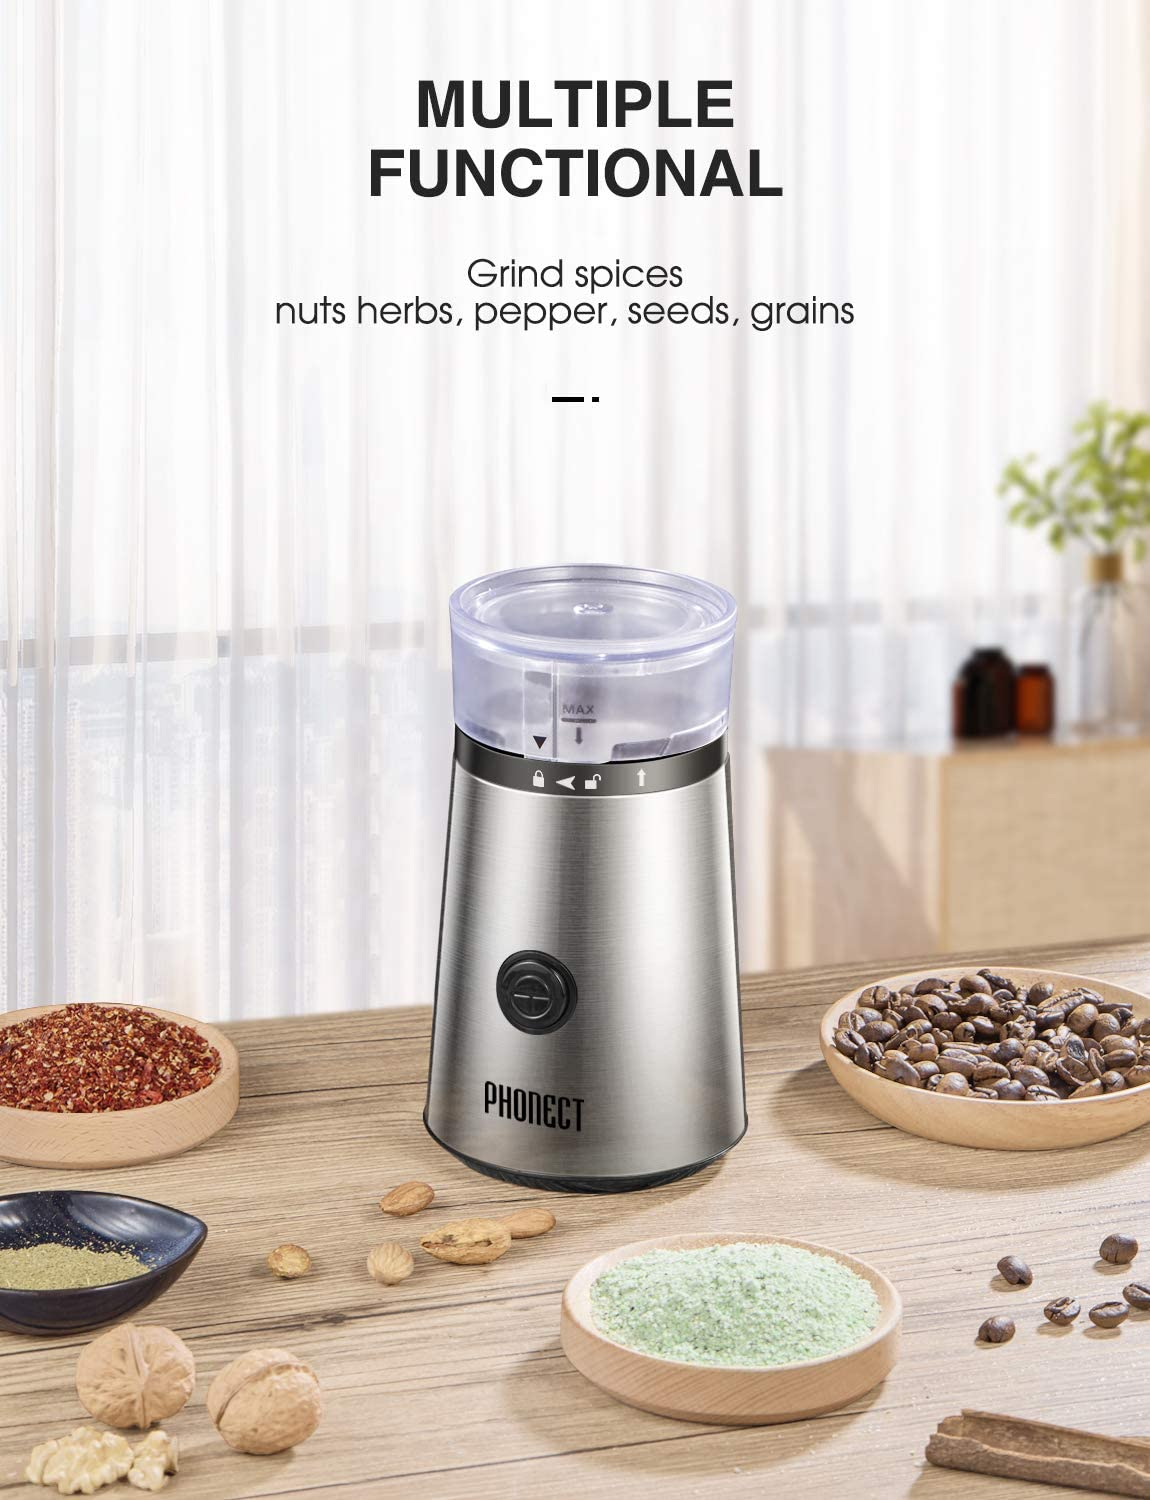 Coffee Grinder Electric, 150W Blade Spice Grinder, Portable Stainless Steel Grinder, Removable Easy Clean Bowl Grinder also for Seeds Grains Nuts, 12 Cups